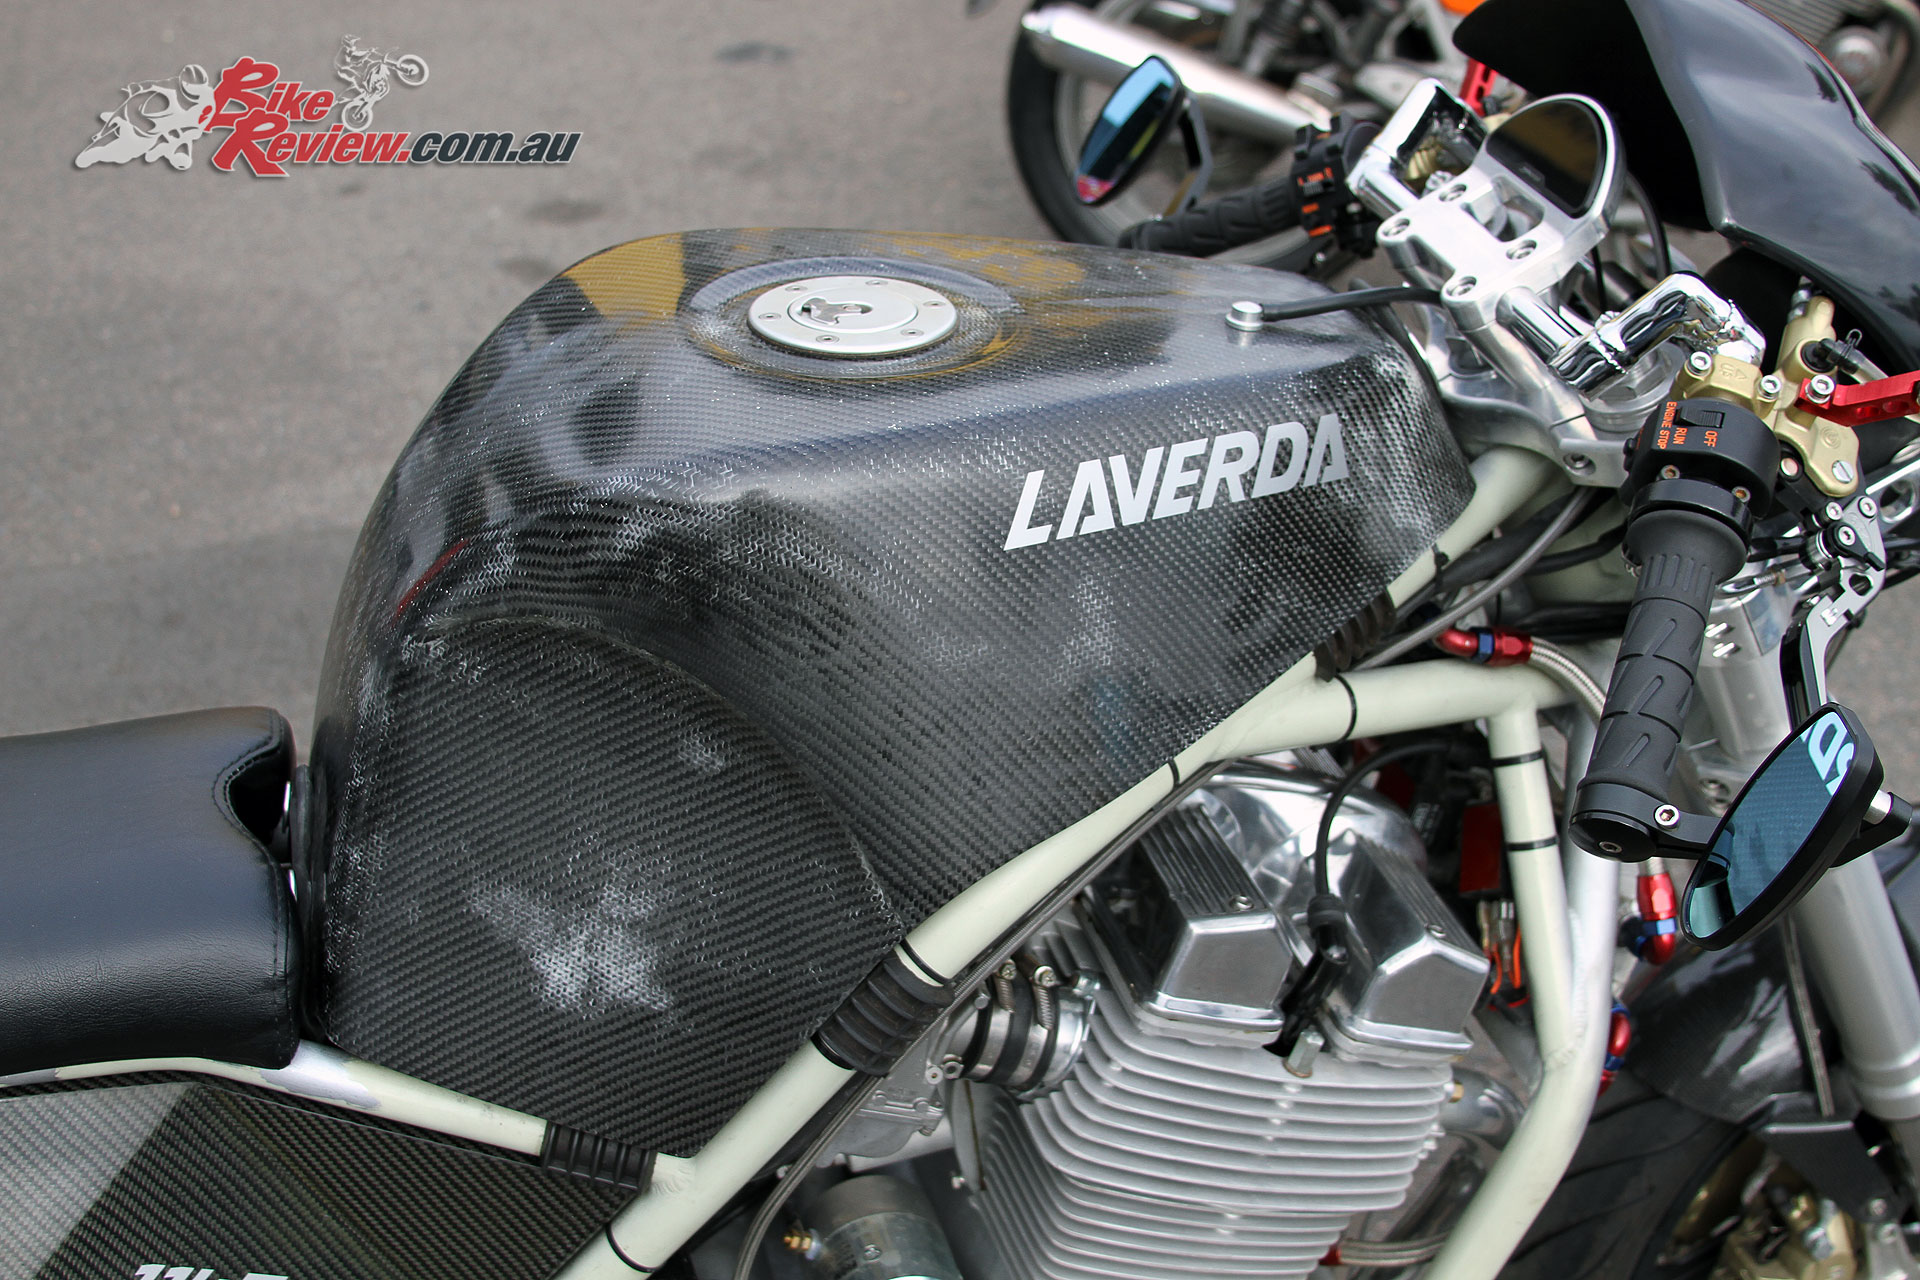 The carbon-fibre tank is one of two made by a fellow Motodd owner